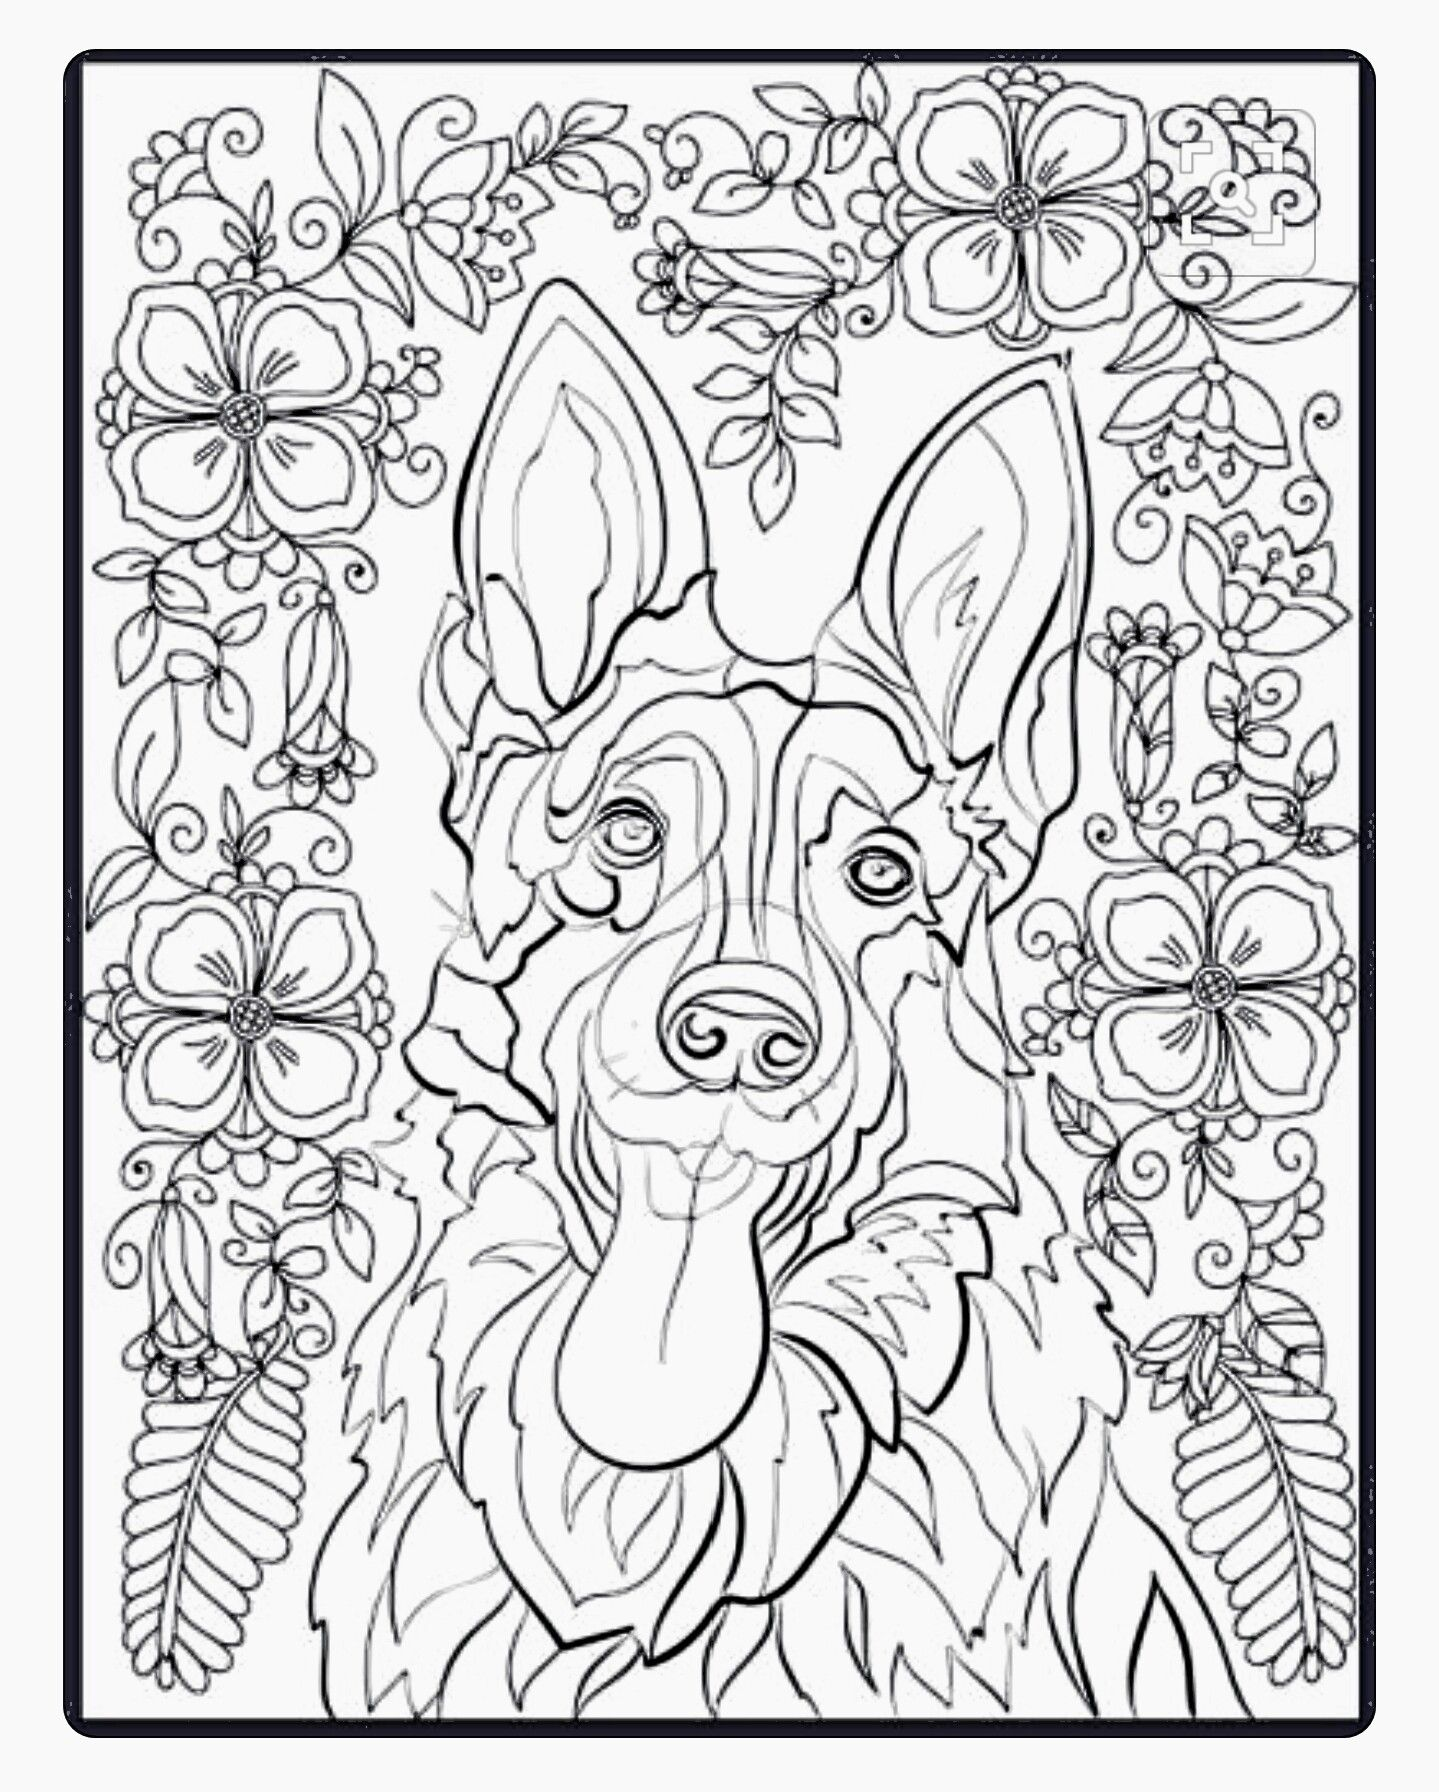 German Shepherd Coloring Page Dog Coloring Page Horse Coloring